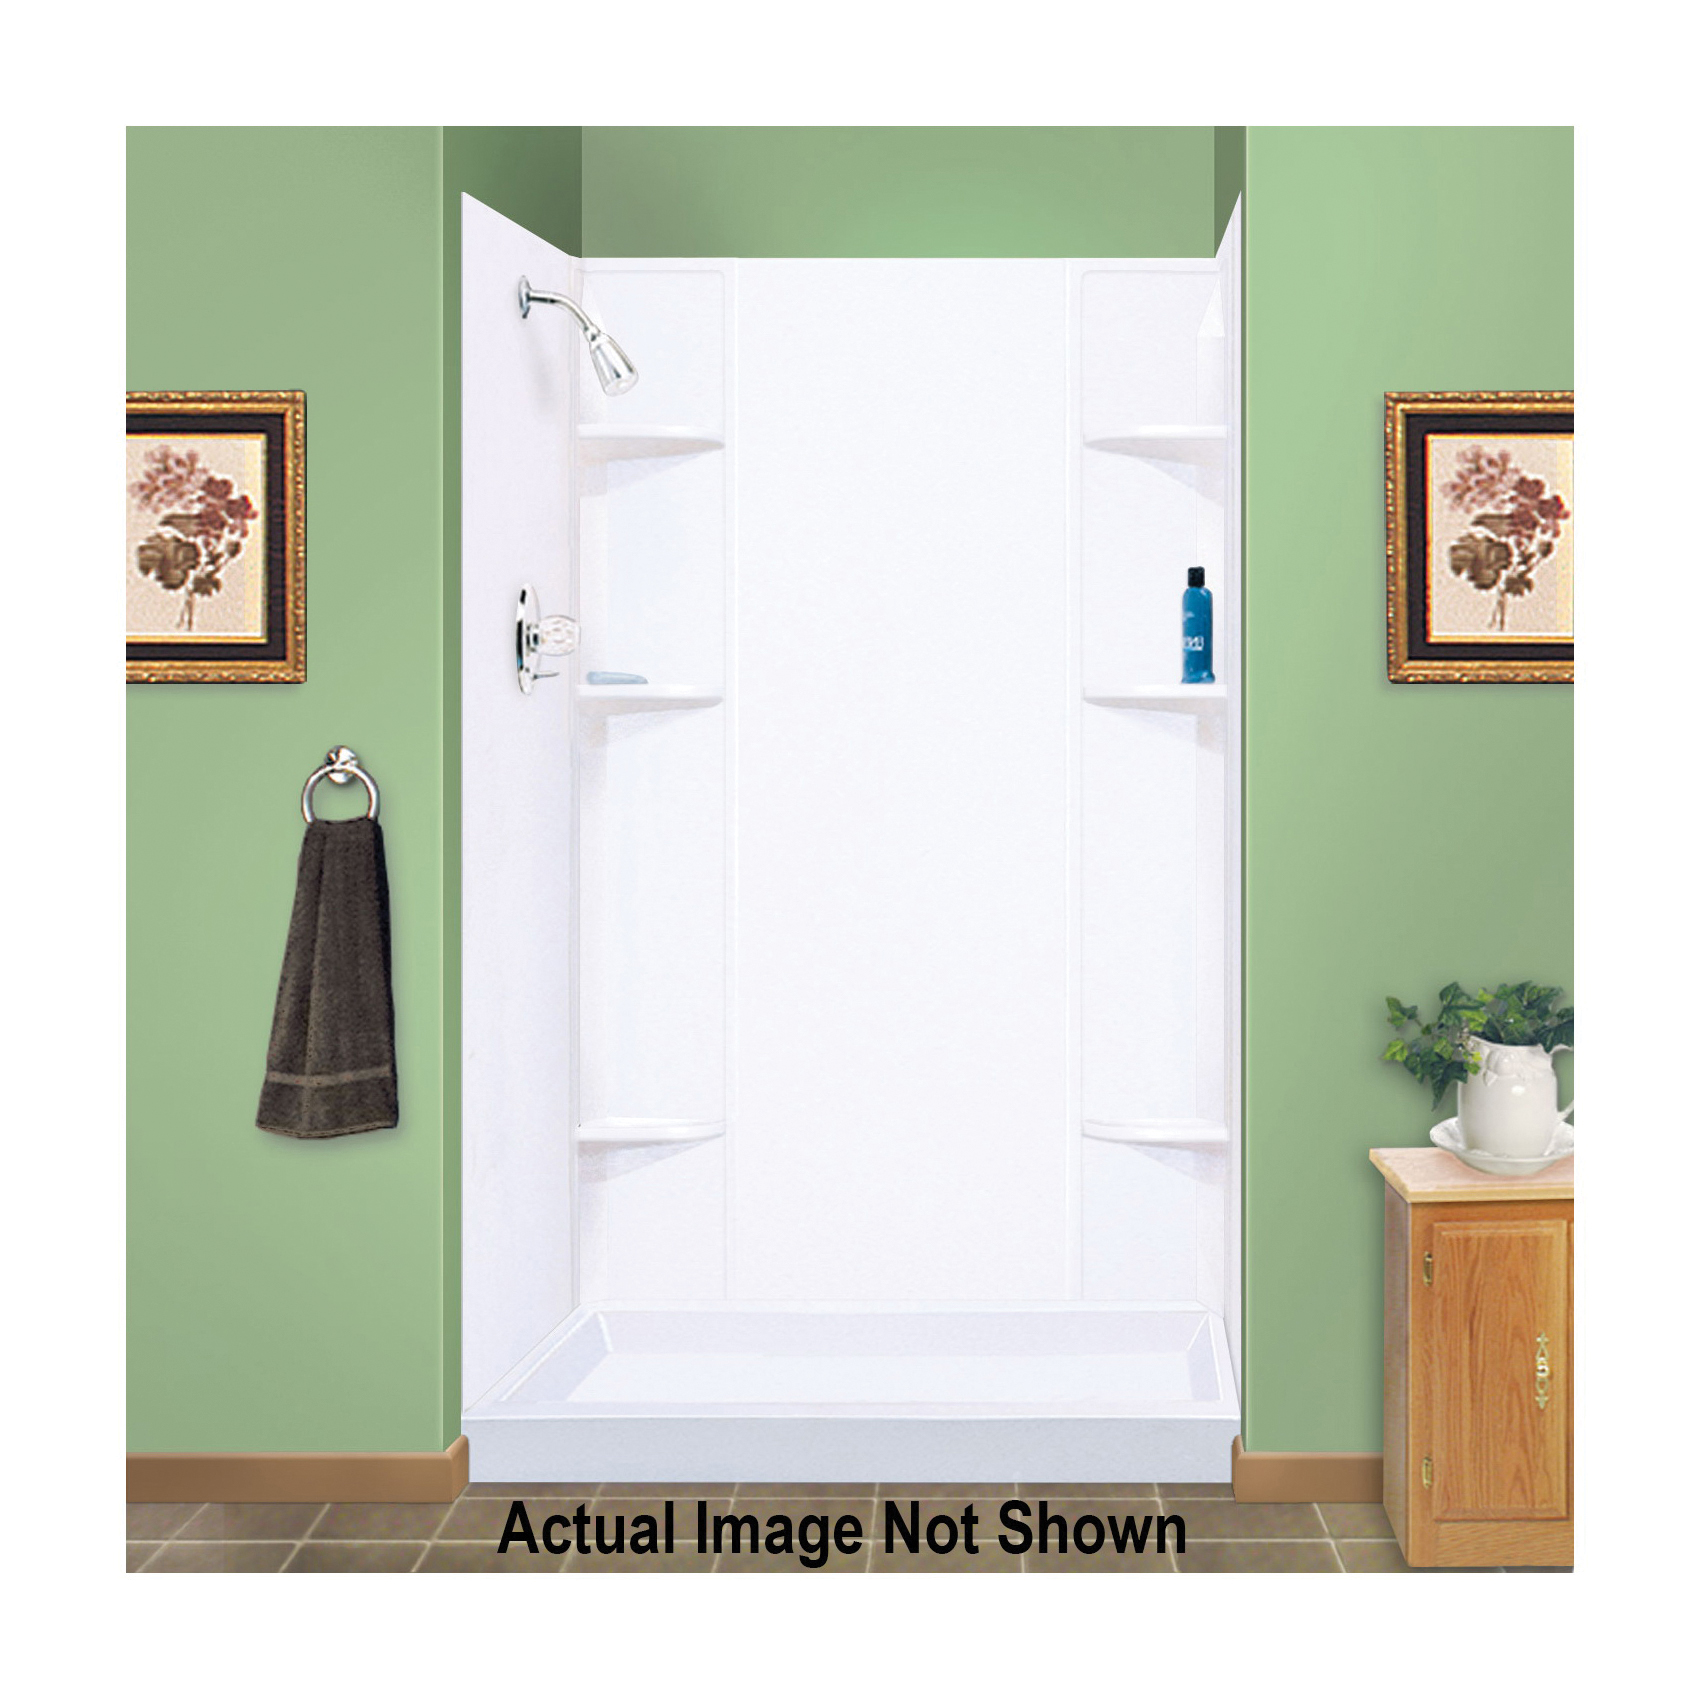 Consolidated Supply Co. | ELM® 260 DURAWALL® Shower Wall, 71-1/2 in ...